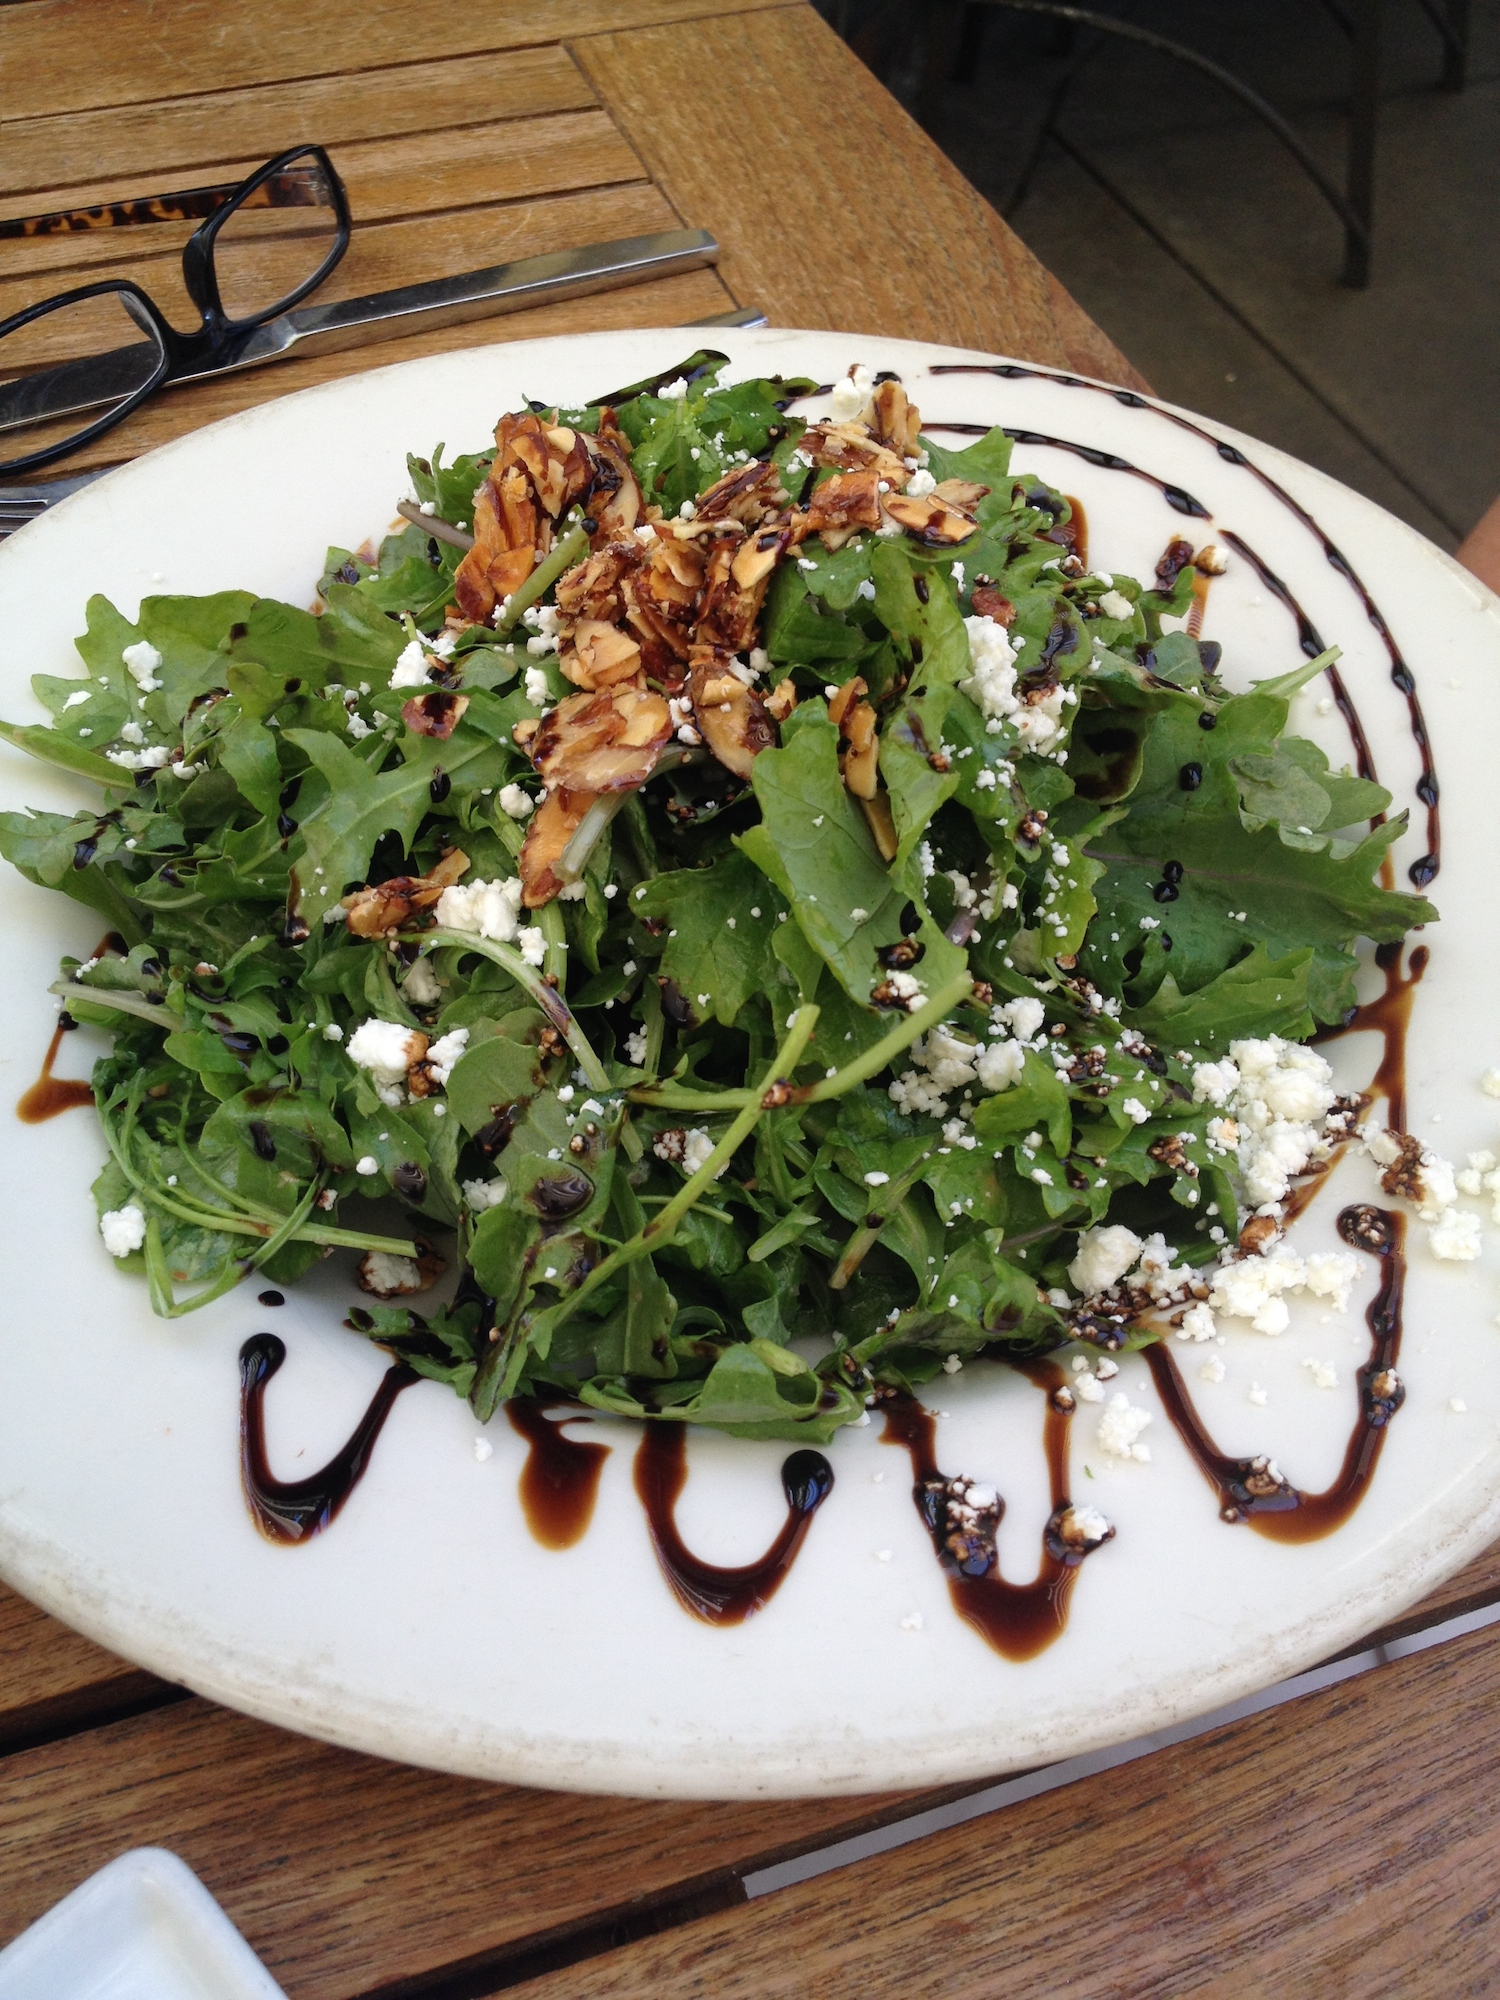 Public House Restaurant, Arugula Salad with feta cheese and candied almond bark